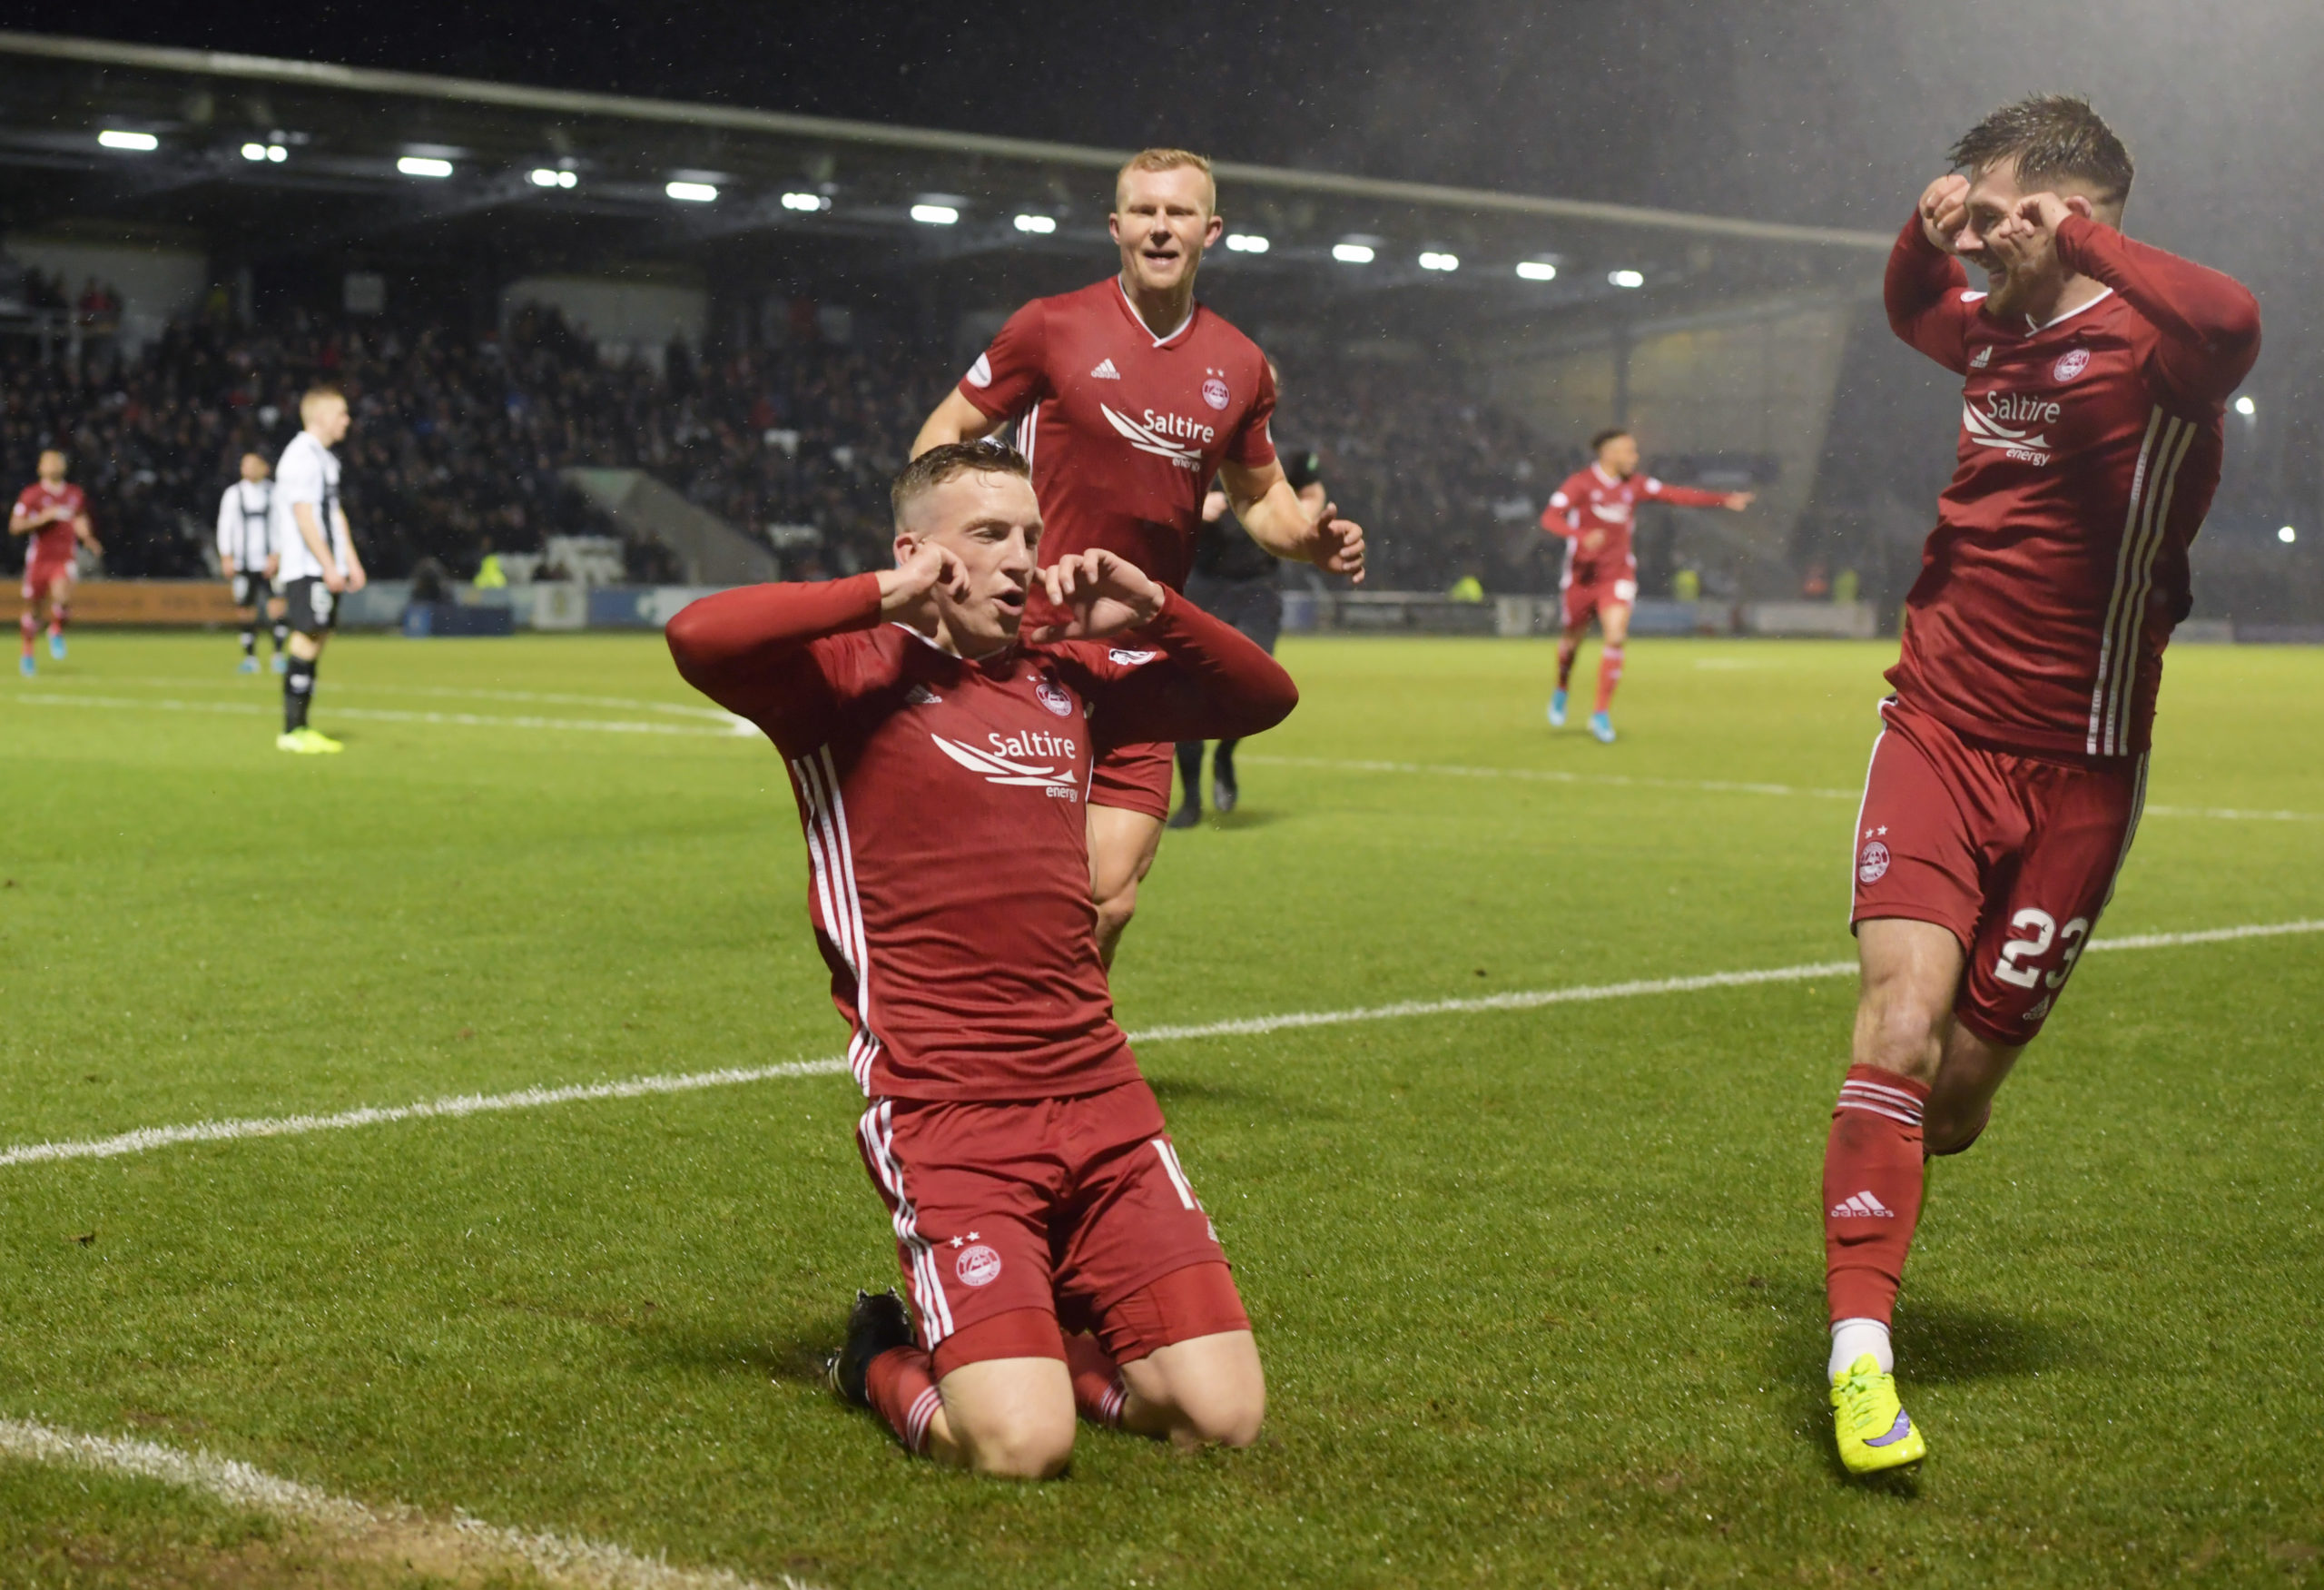 Aberdeen are in the semi-finals of last term's yet-to-be-completed Scottish Cup.